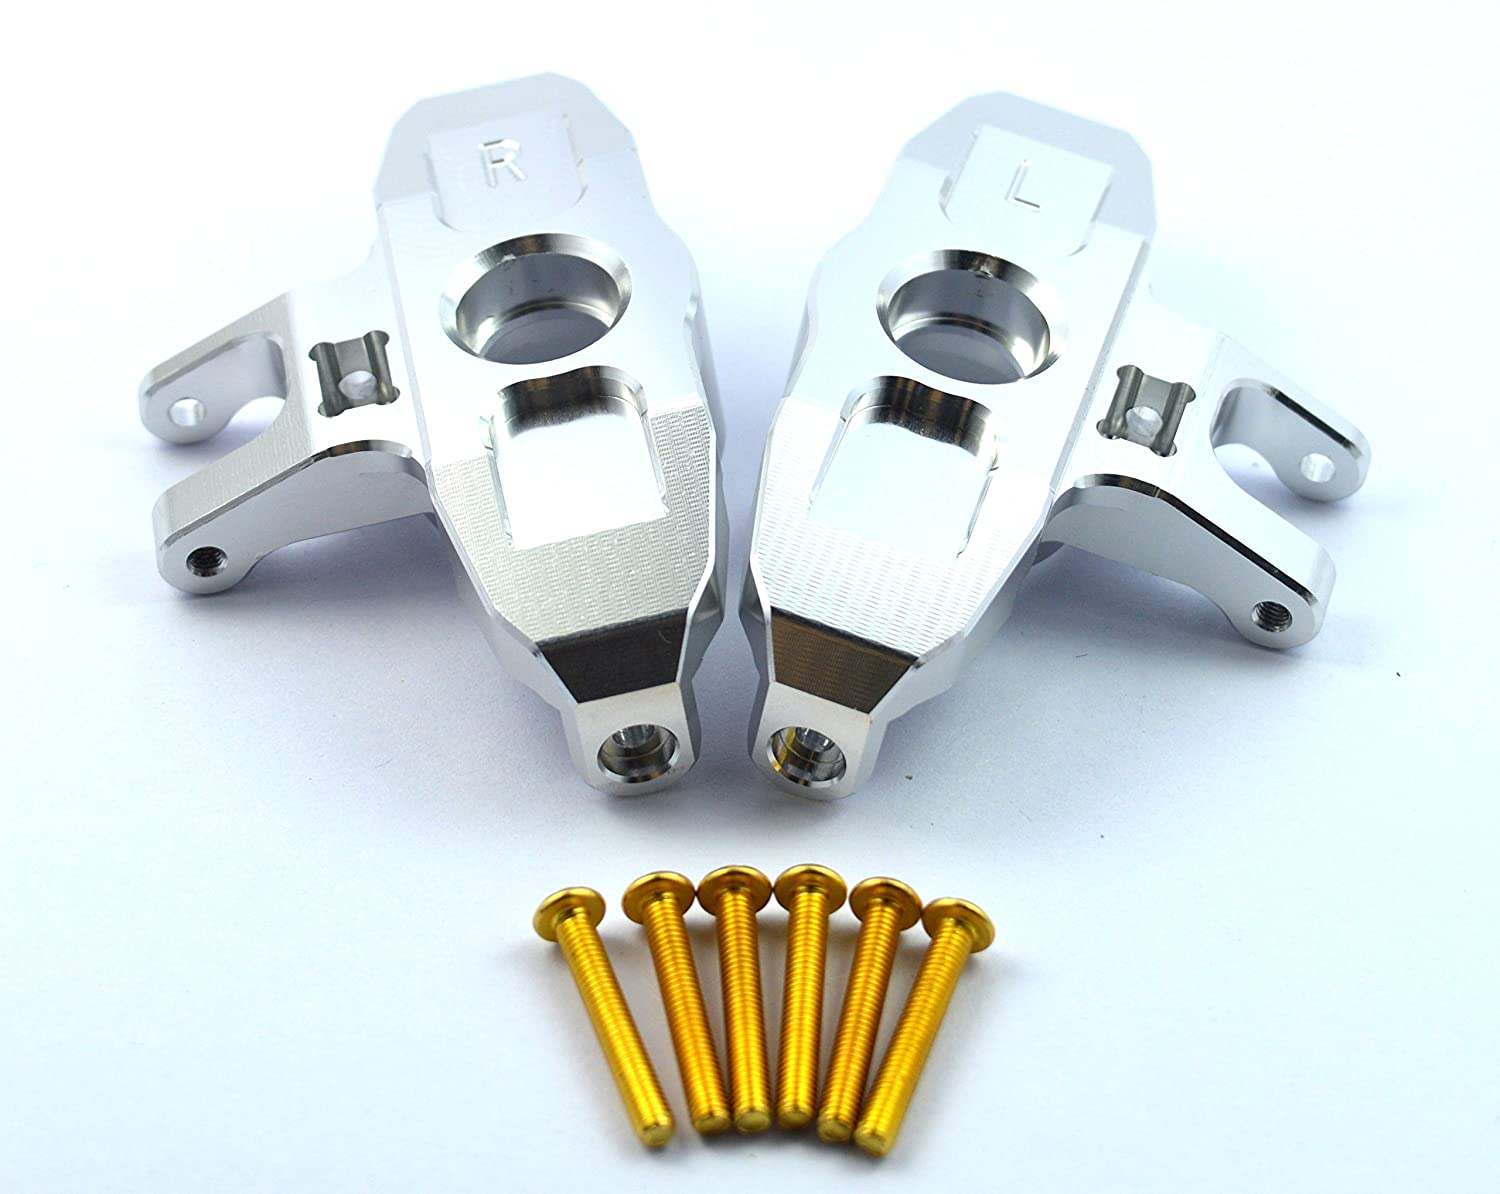 UDR Dhawk Racing CNC Aluminum Axle Carriers Front C-Hubs For Traxxas Unlimited Desert Racer